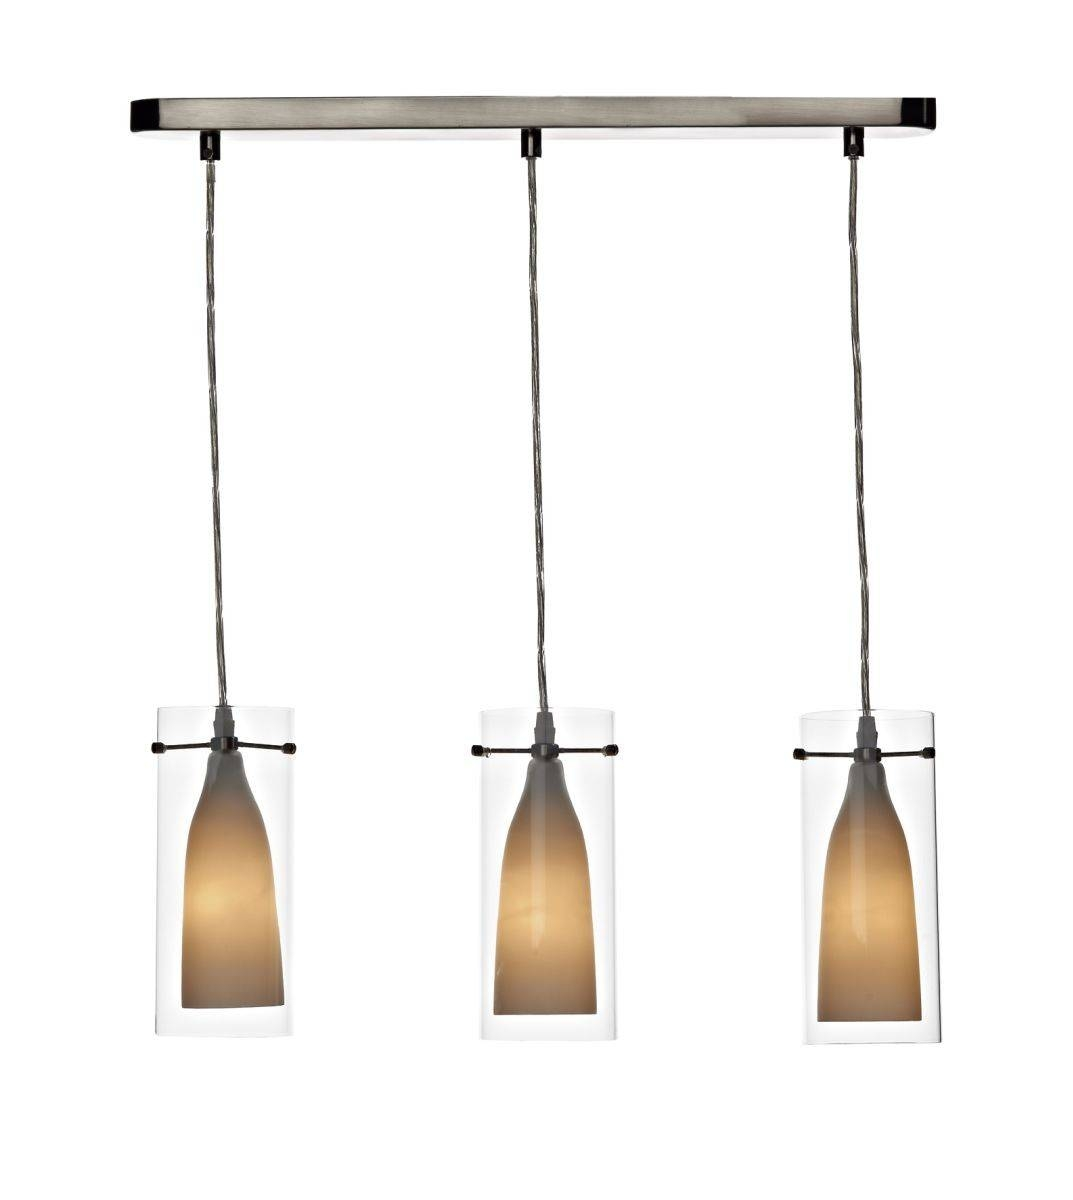 Multi Light Pendants - Baby-Exit intended for Multiple Pendant Light Fixtures (Image 9 of 15)